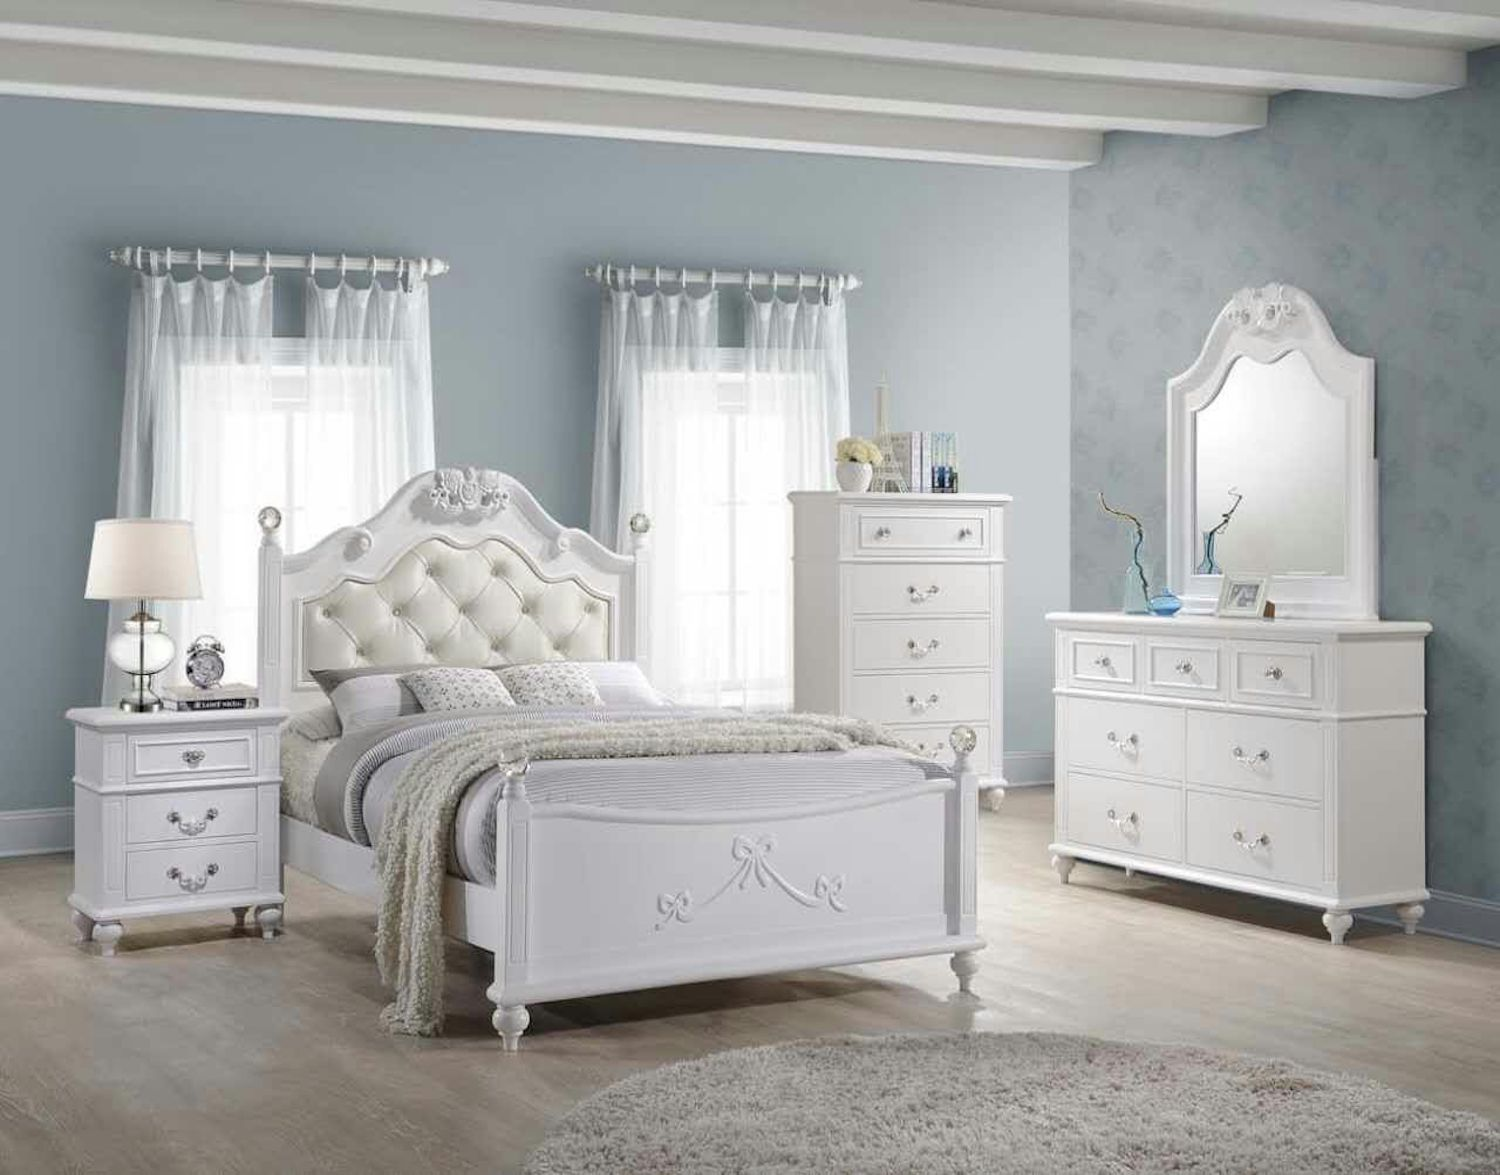 Alana Youth Bedroom Set, alana, Kids Bedroom Sets, Alana Youth Bedroom Set from Midha Furniture by Midha Furniture serving Brampton, Mississauga, Etobicoke, Toronto, Scraborough, Caledon, Cambridge, Oakville, Markham, Ajax, Pickering, Oshawa, Richmondhill, Kitchener, Hamilton, Cambridge, Waterloo and GTA area